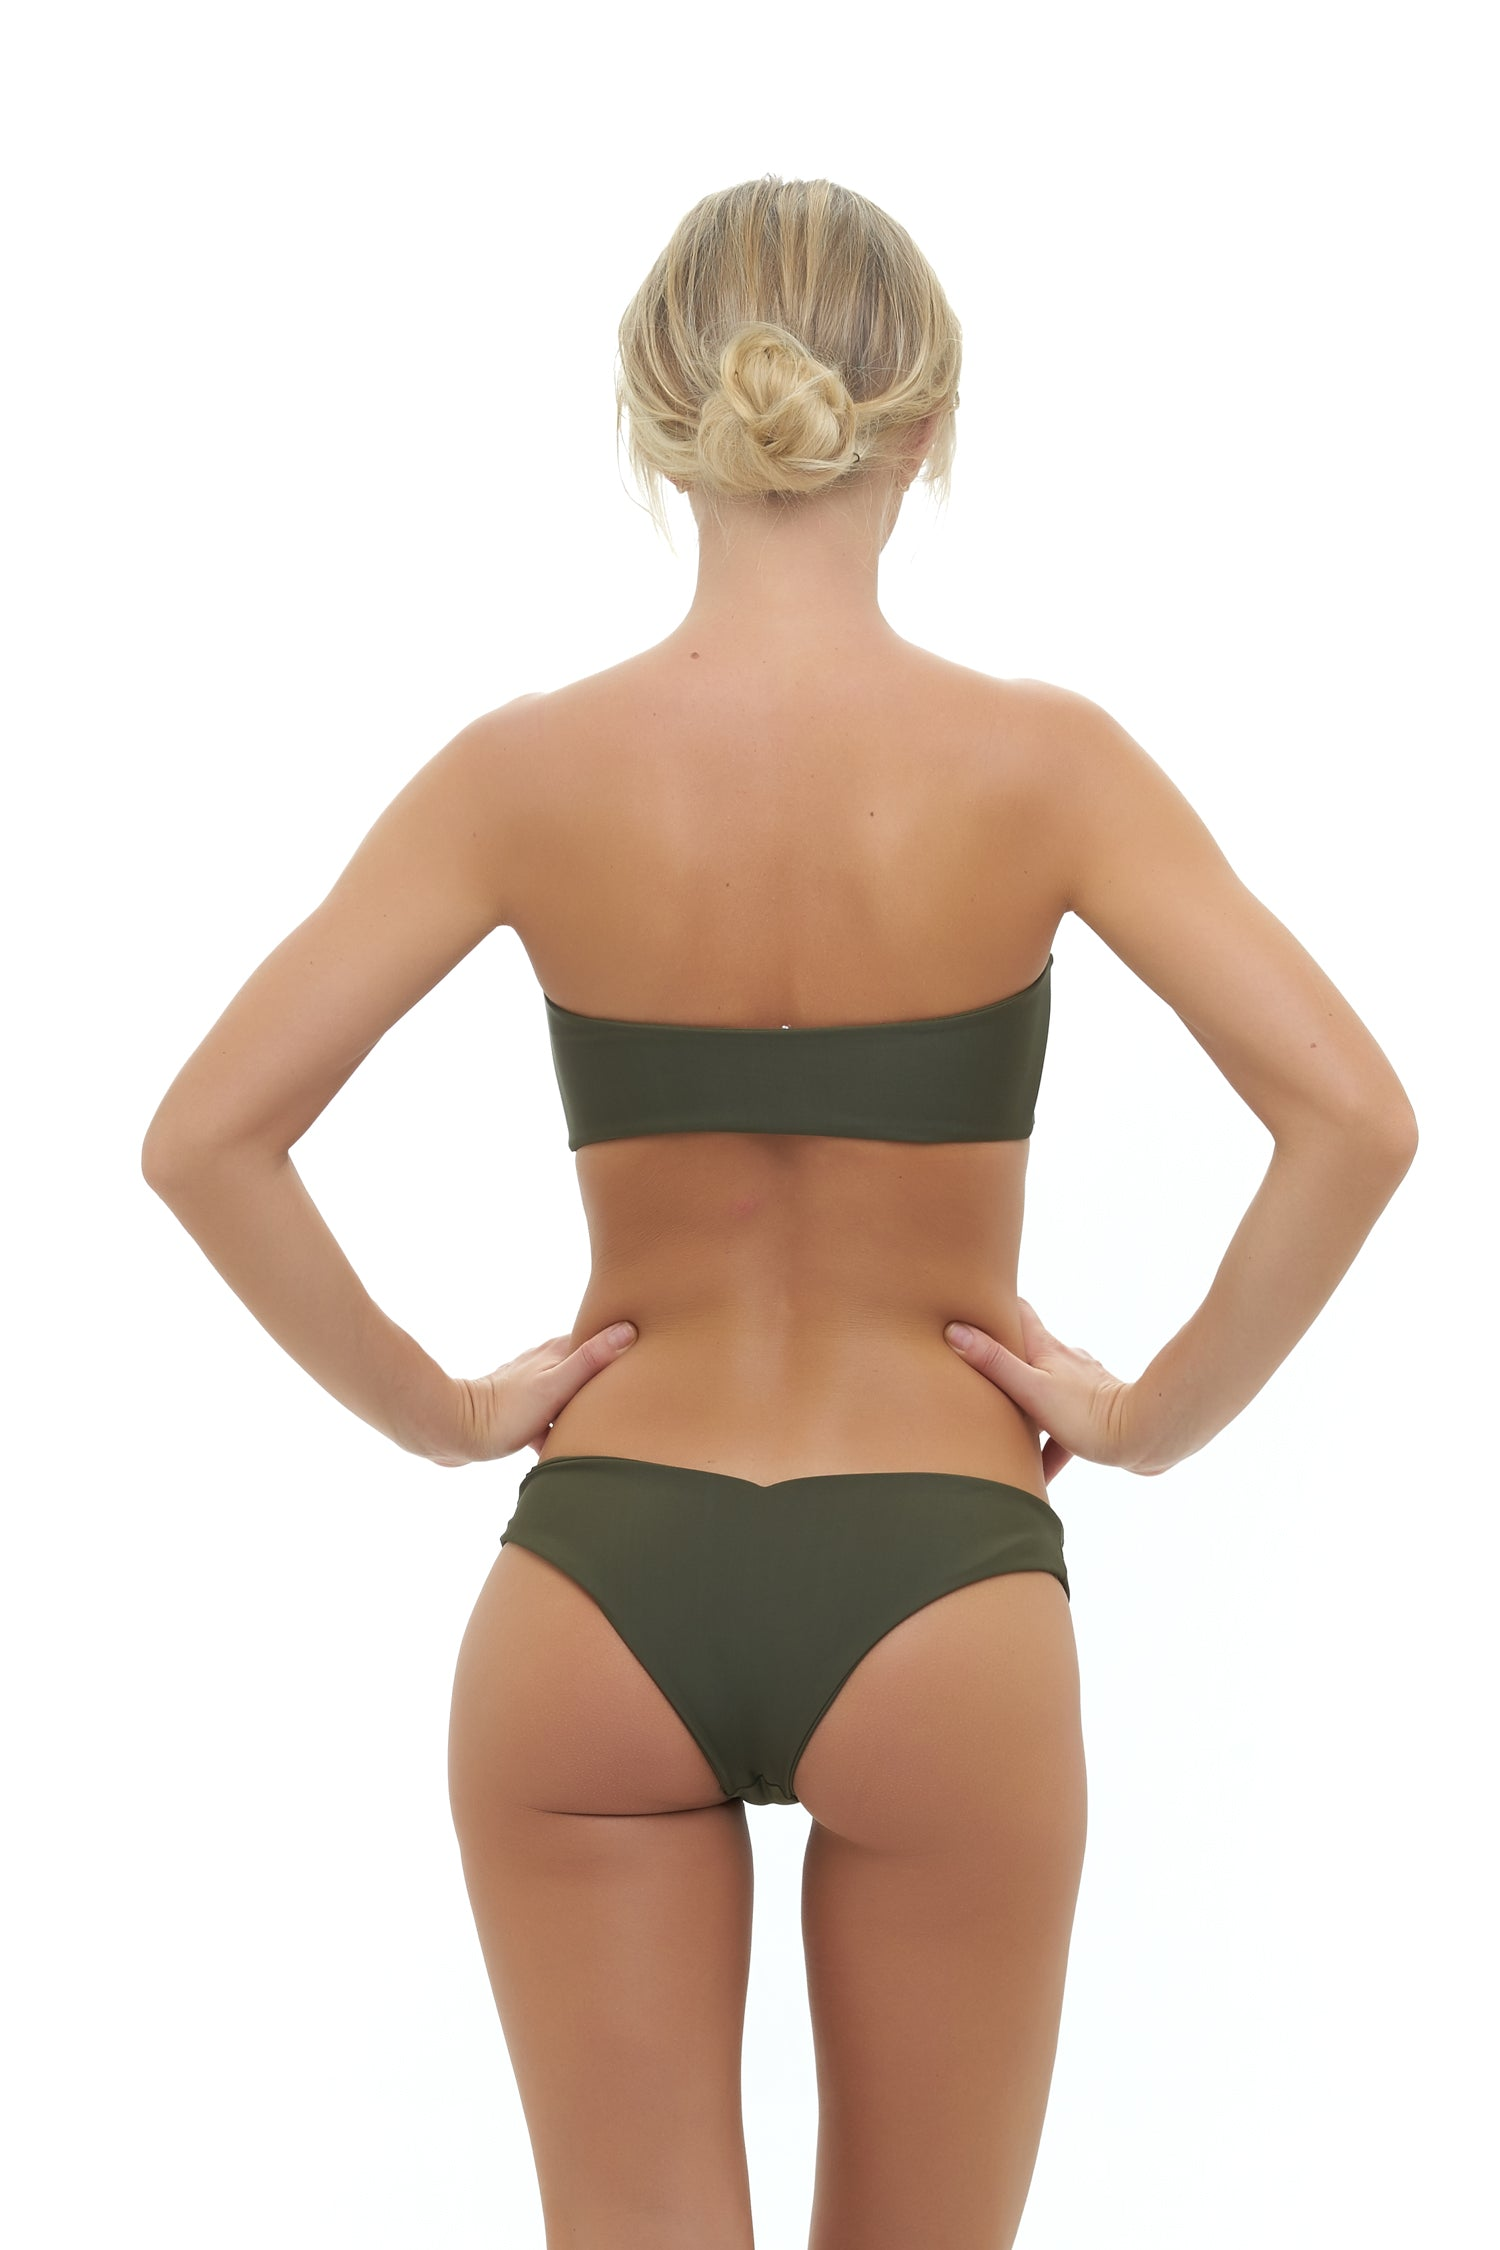 Storm Swimwear - Ravello - Plain Bandeu Bikini Top in Military Green